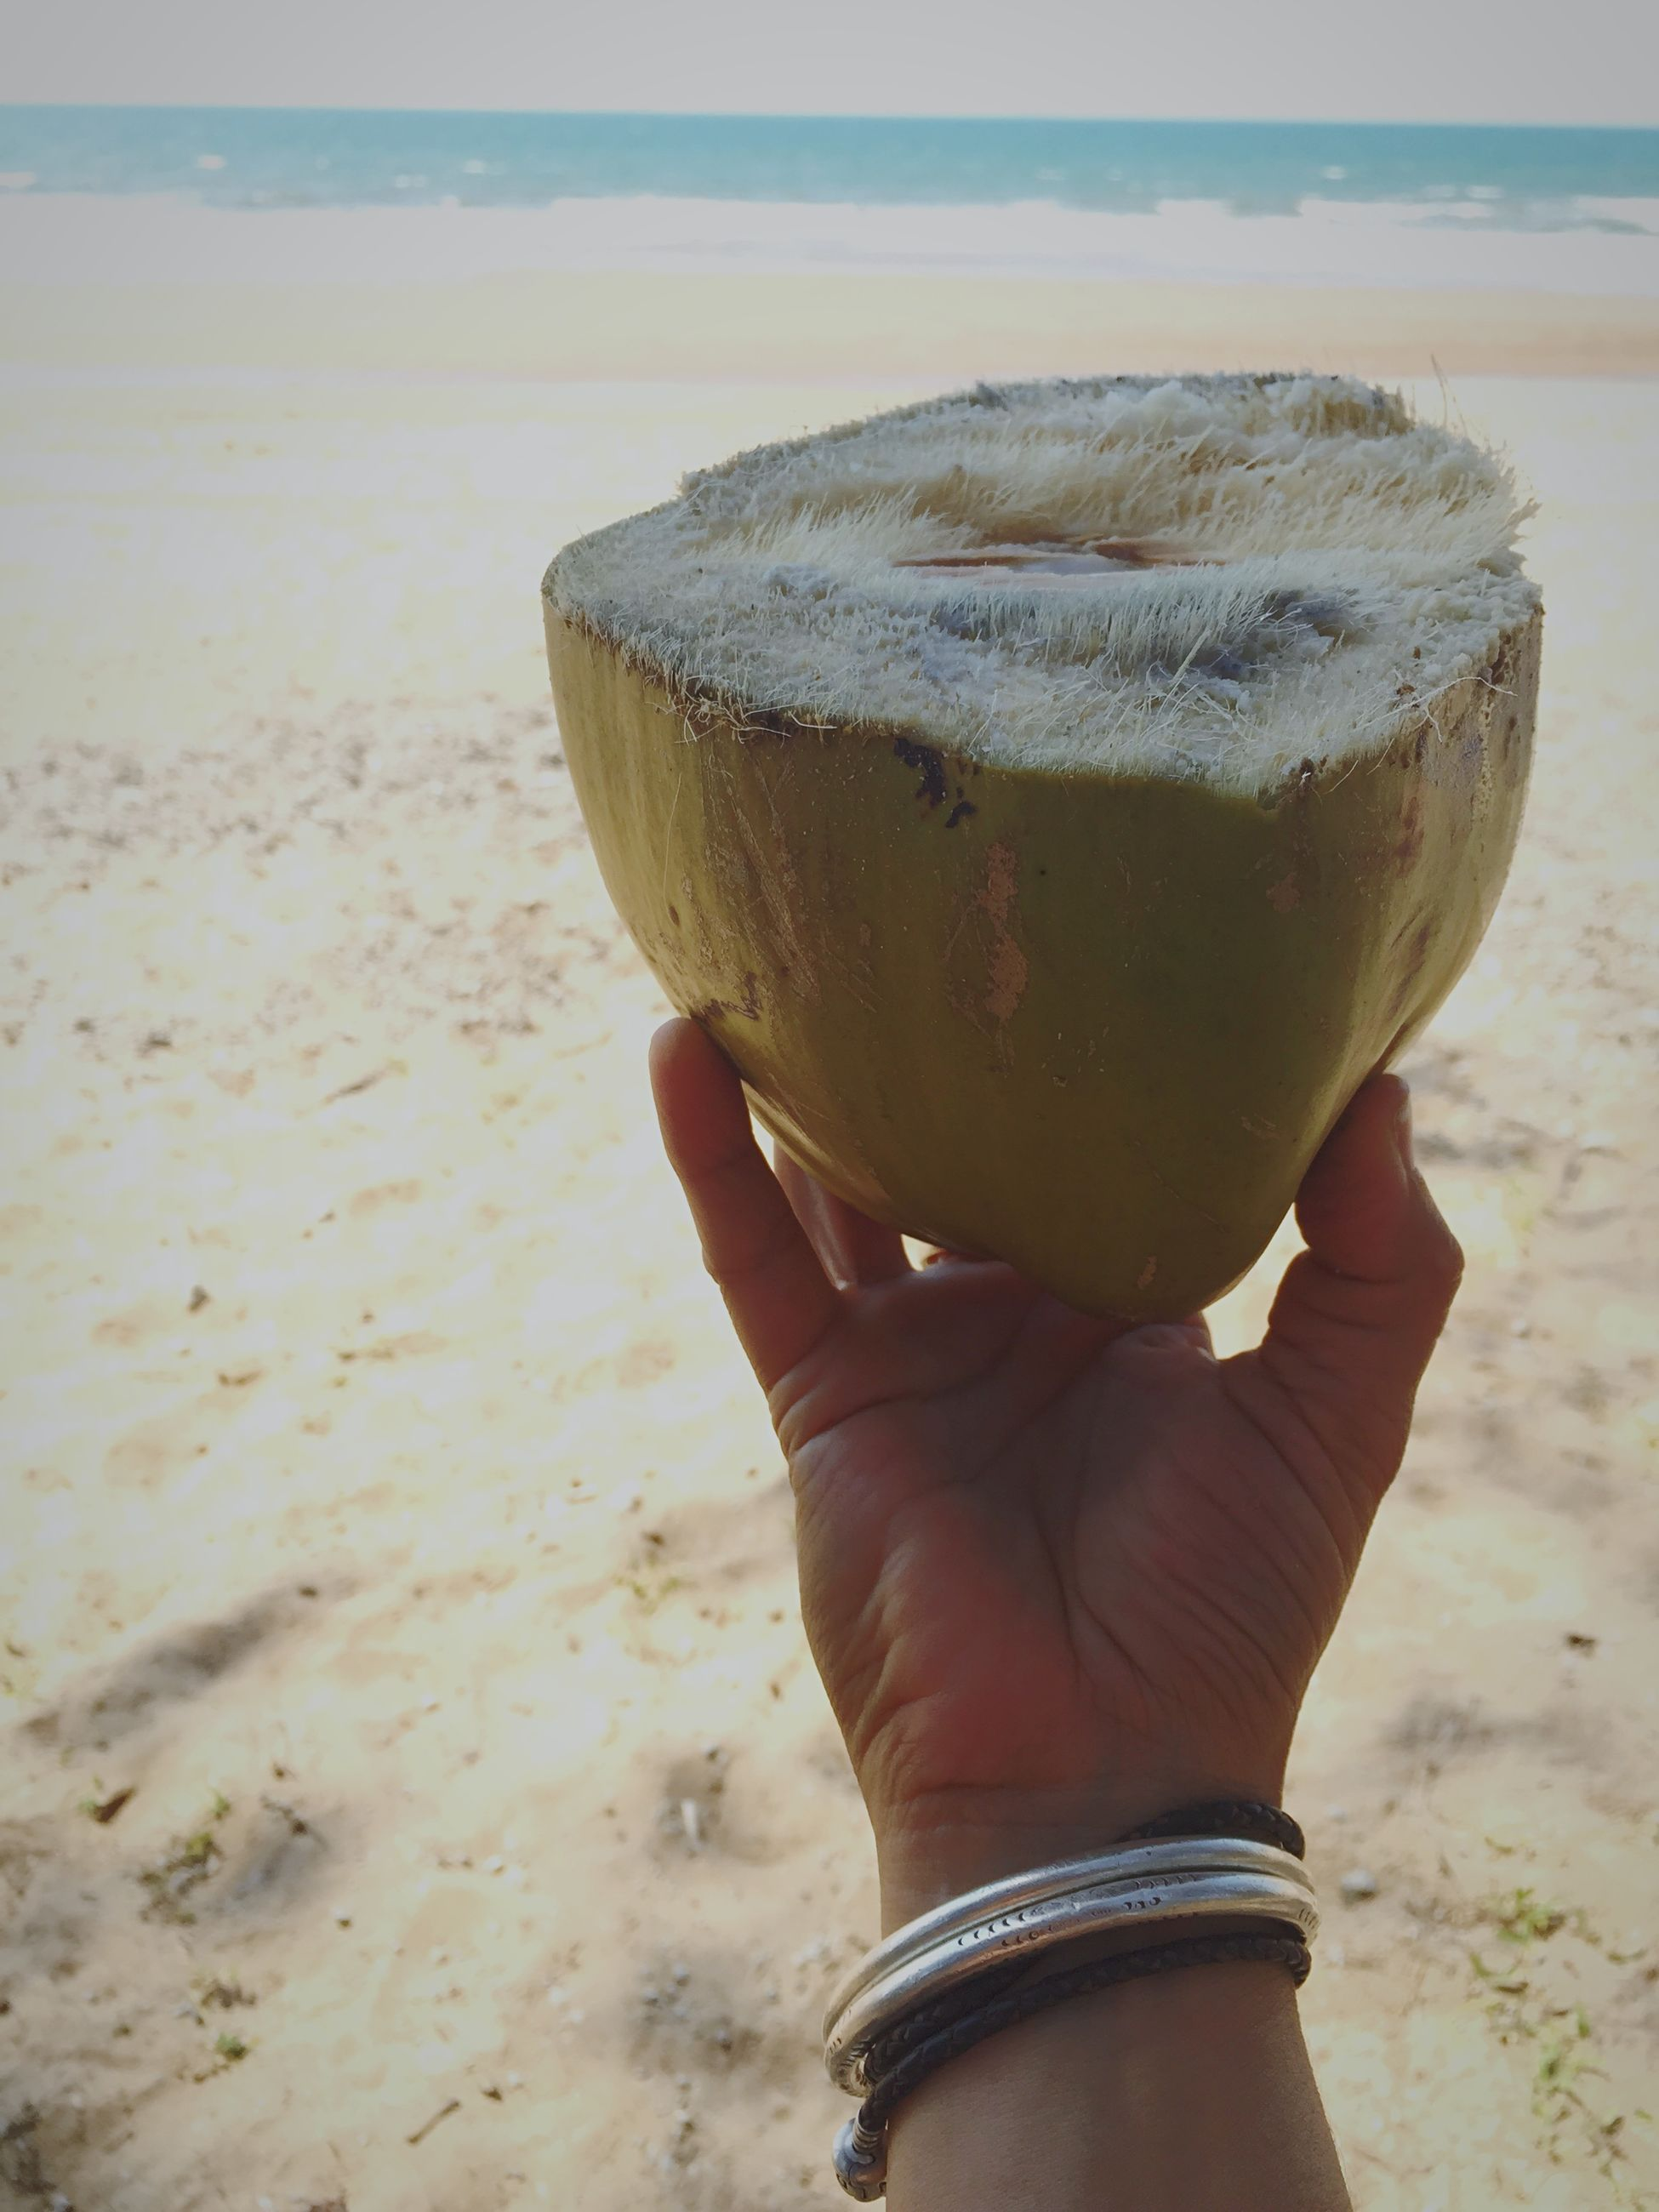 drink, food and drink, beach, refreshment, close-up, focus on foreground, holding, sand, shore, sea, freshness, lifestyles, water, outdoors, part of, sky, person